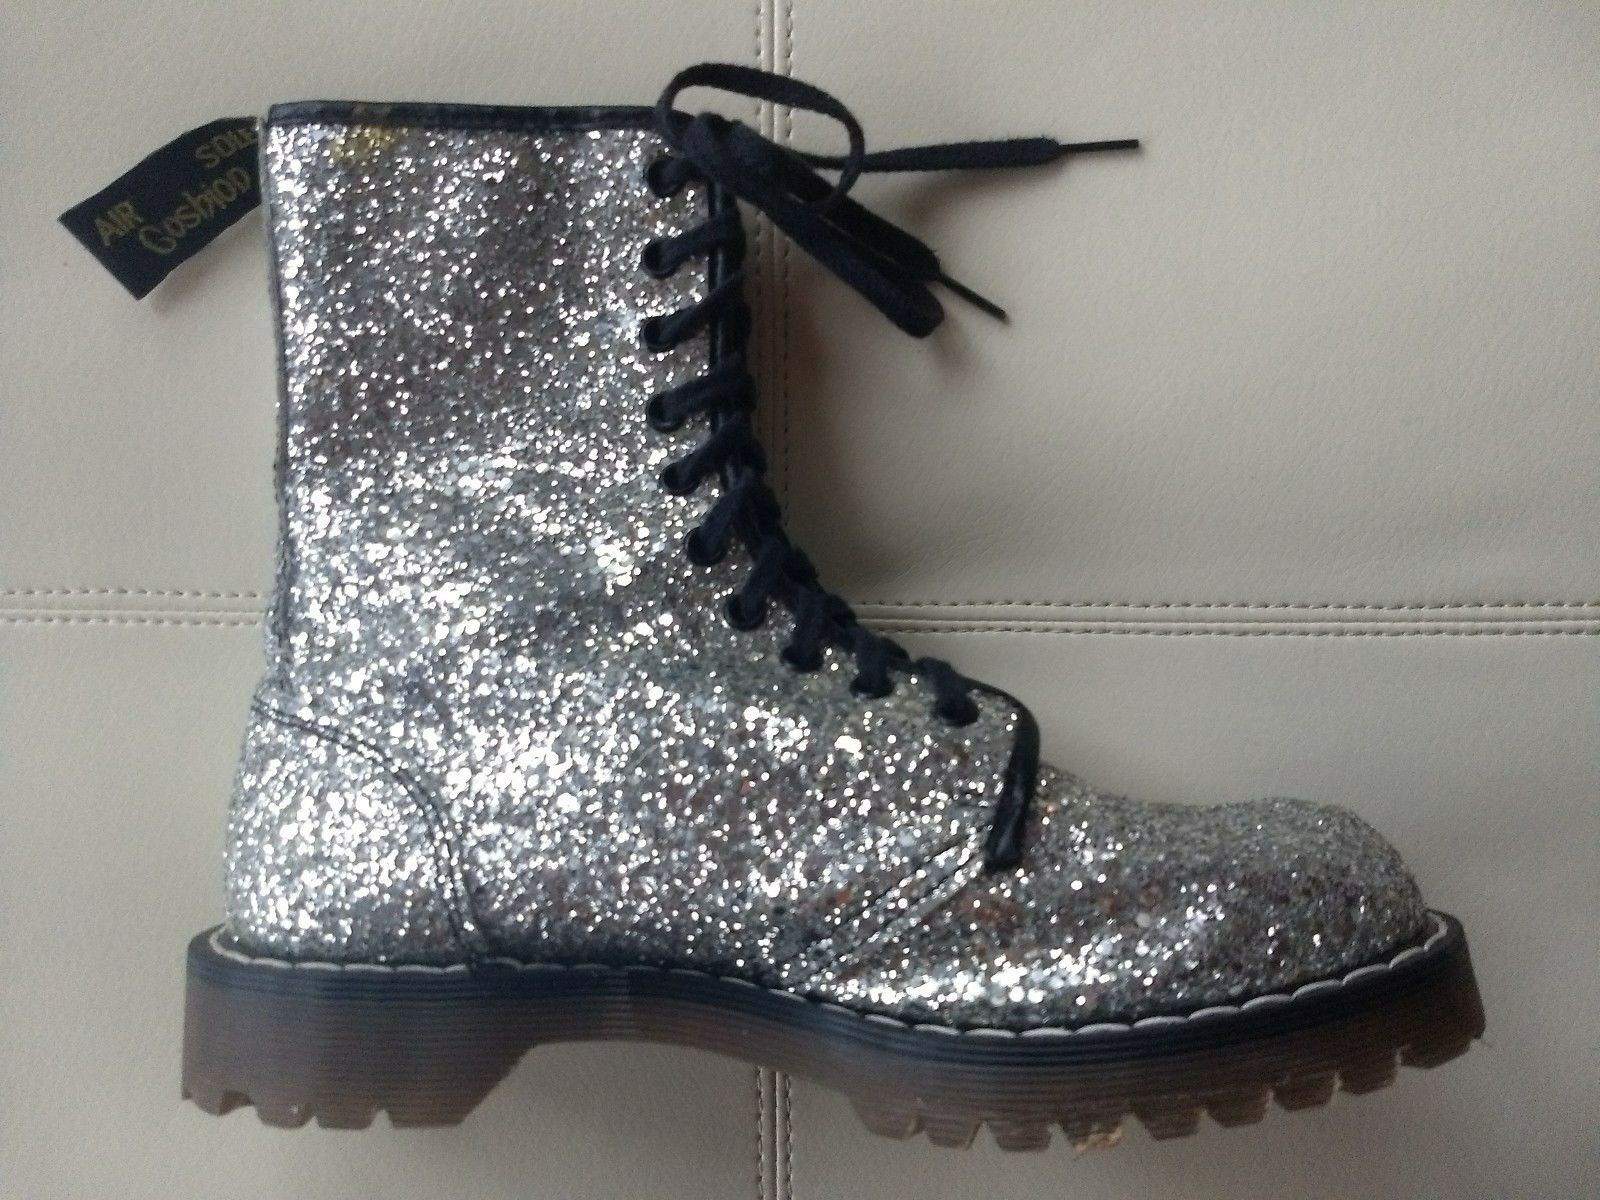 DOC DR. MARTENS Silber Silber Silber SEQUIN GLITTER Stiefel RARE VINTAGE MADE IN ENGLAND 5UK 2cfc0d